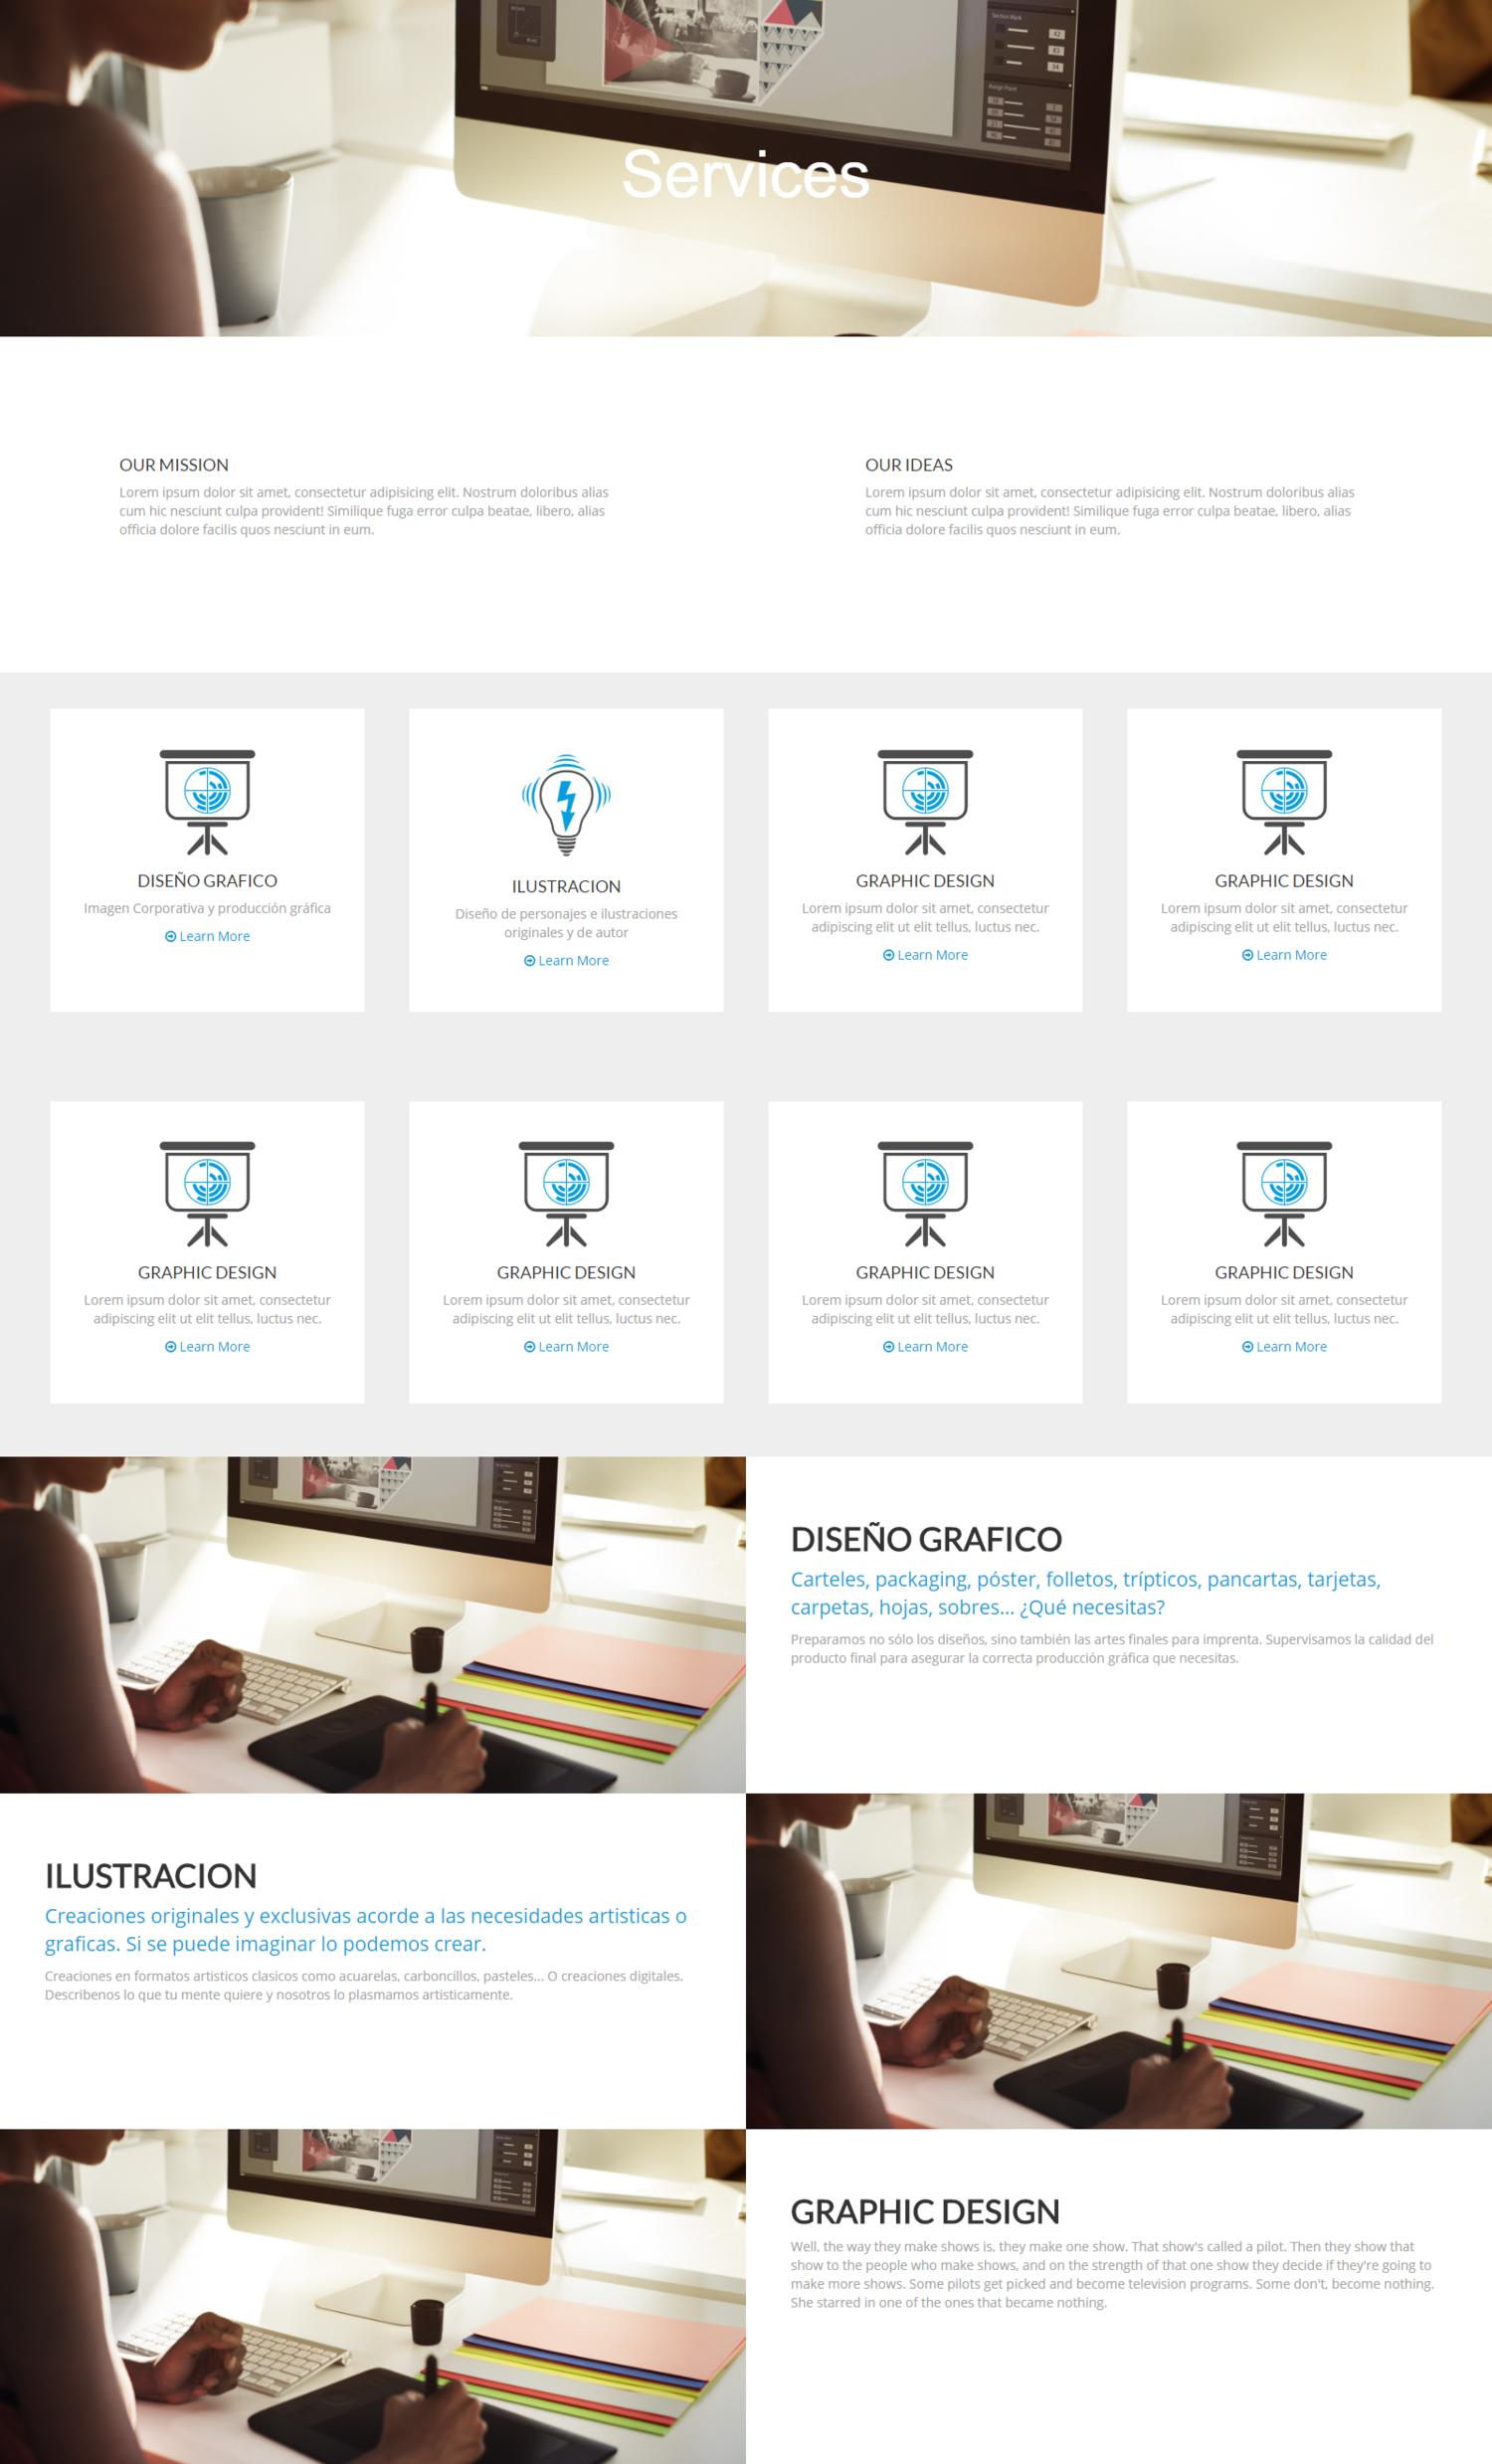 HTML or WORDPRESS custom website by RieraCreative - 106550